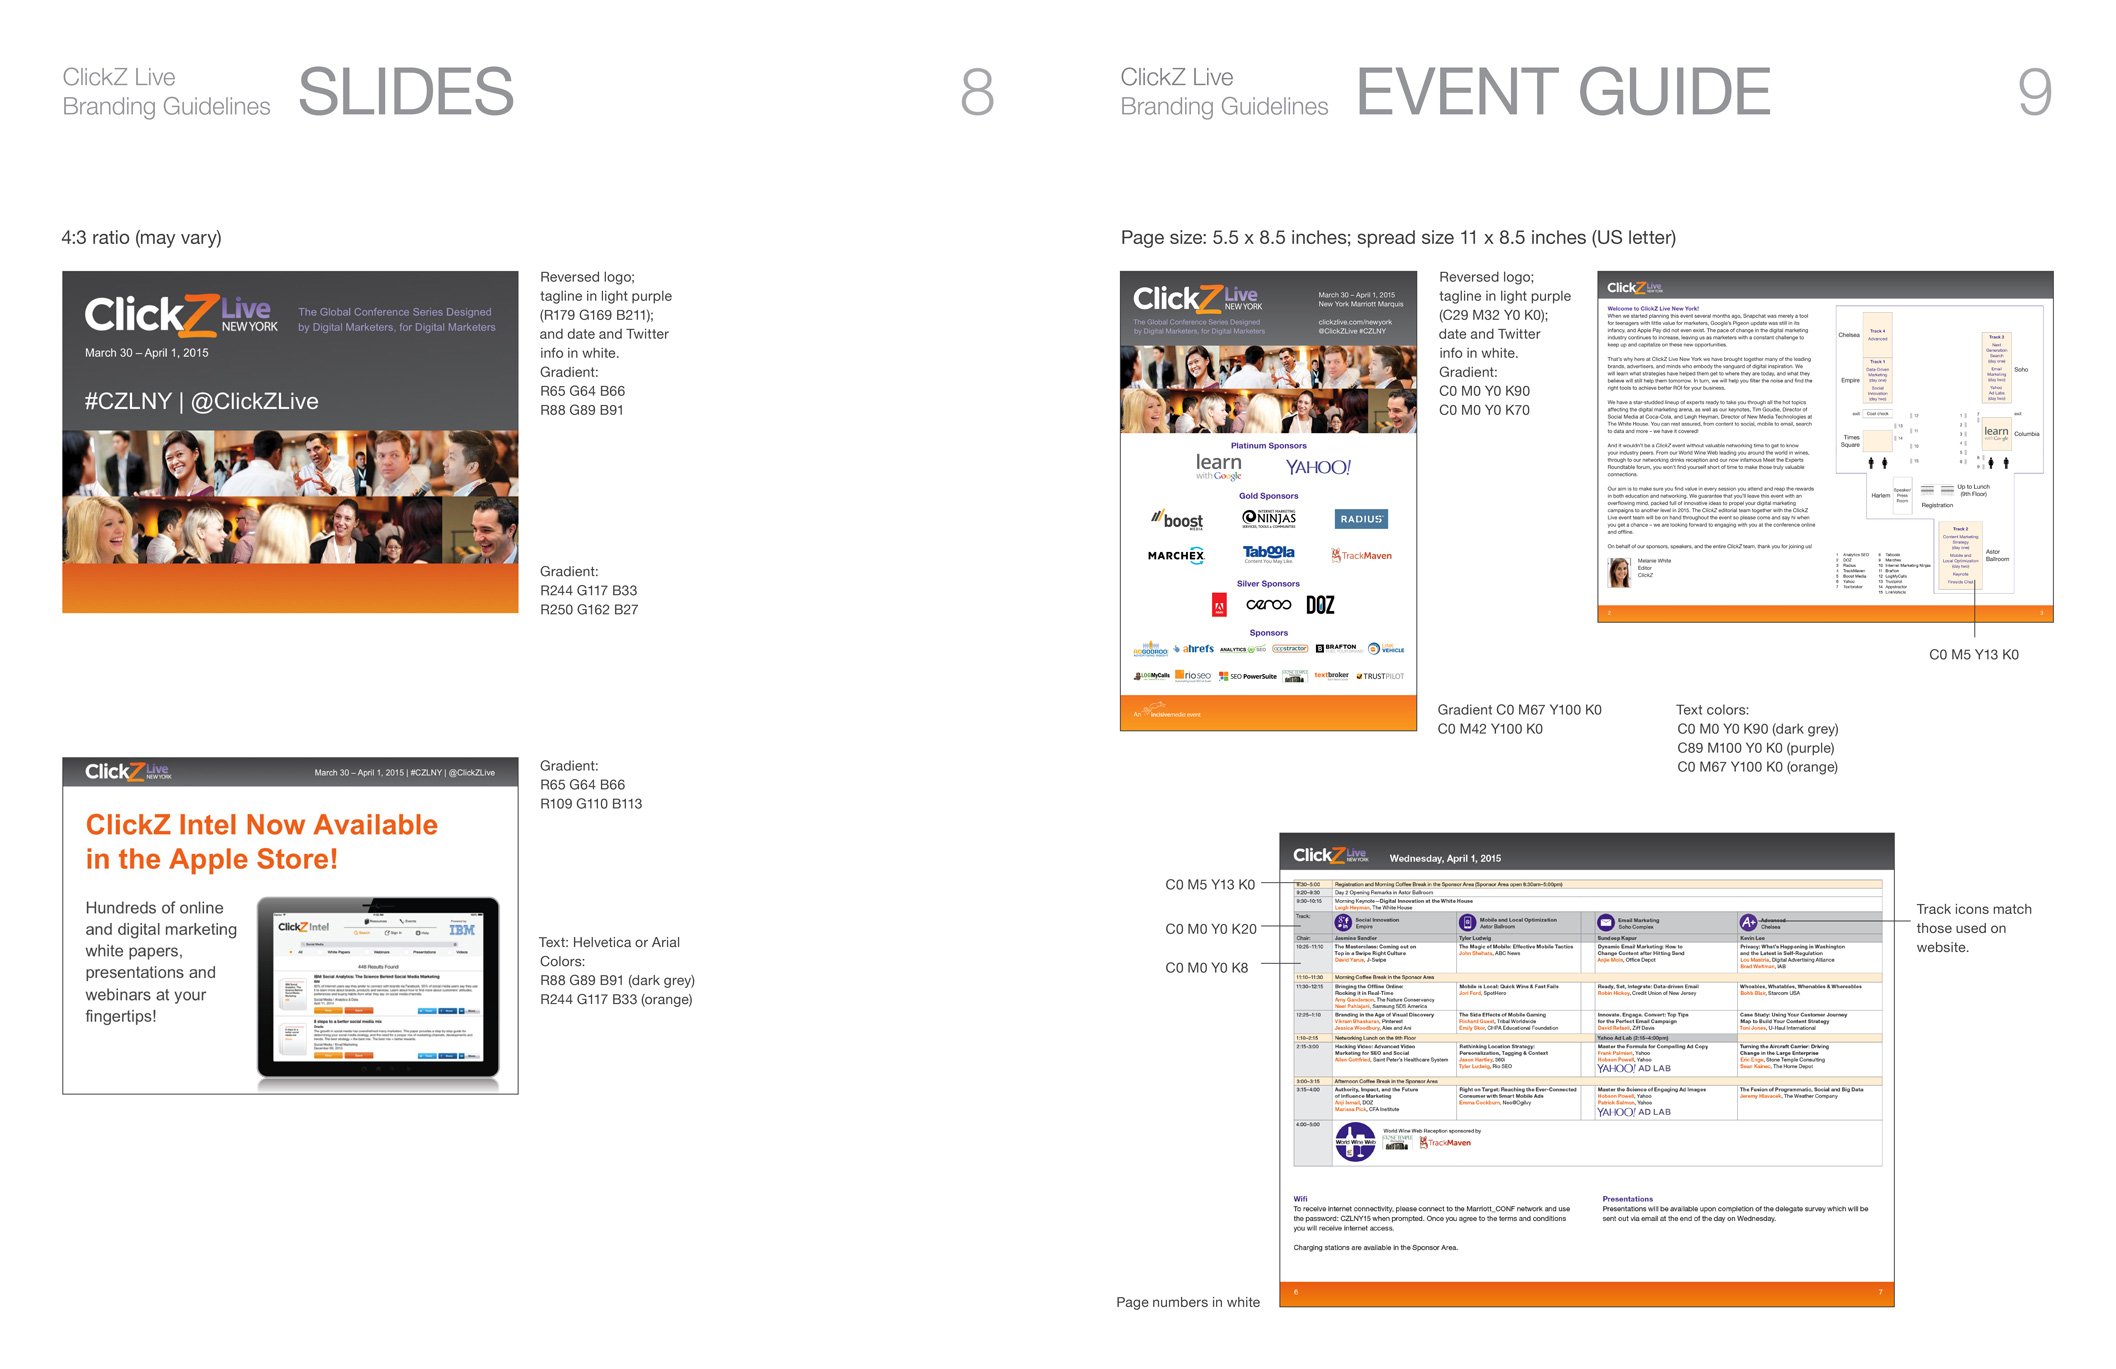 Specs for PowerPoint slides and event guide for ClickZ brand.